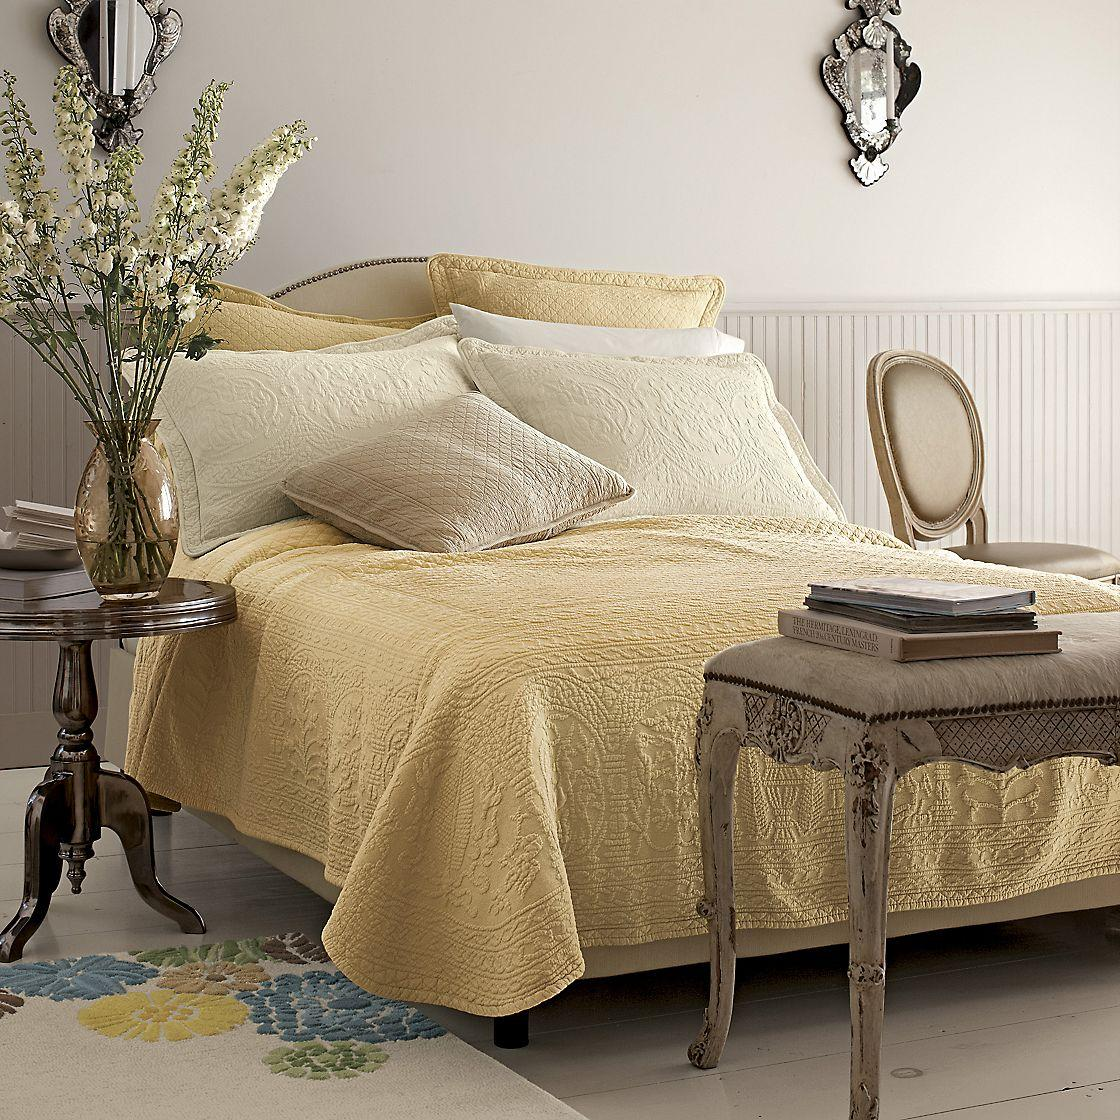 William and Mary Matelass Coverlet